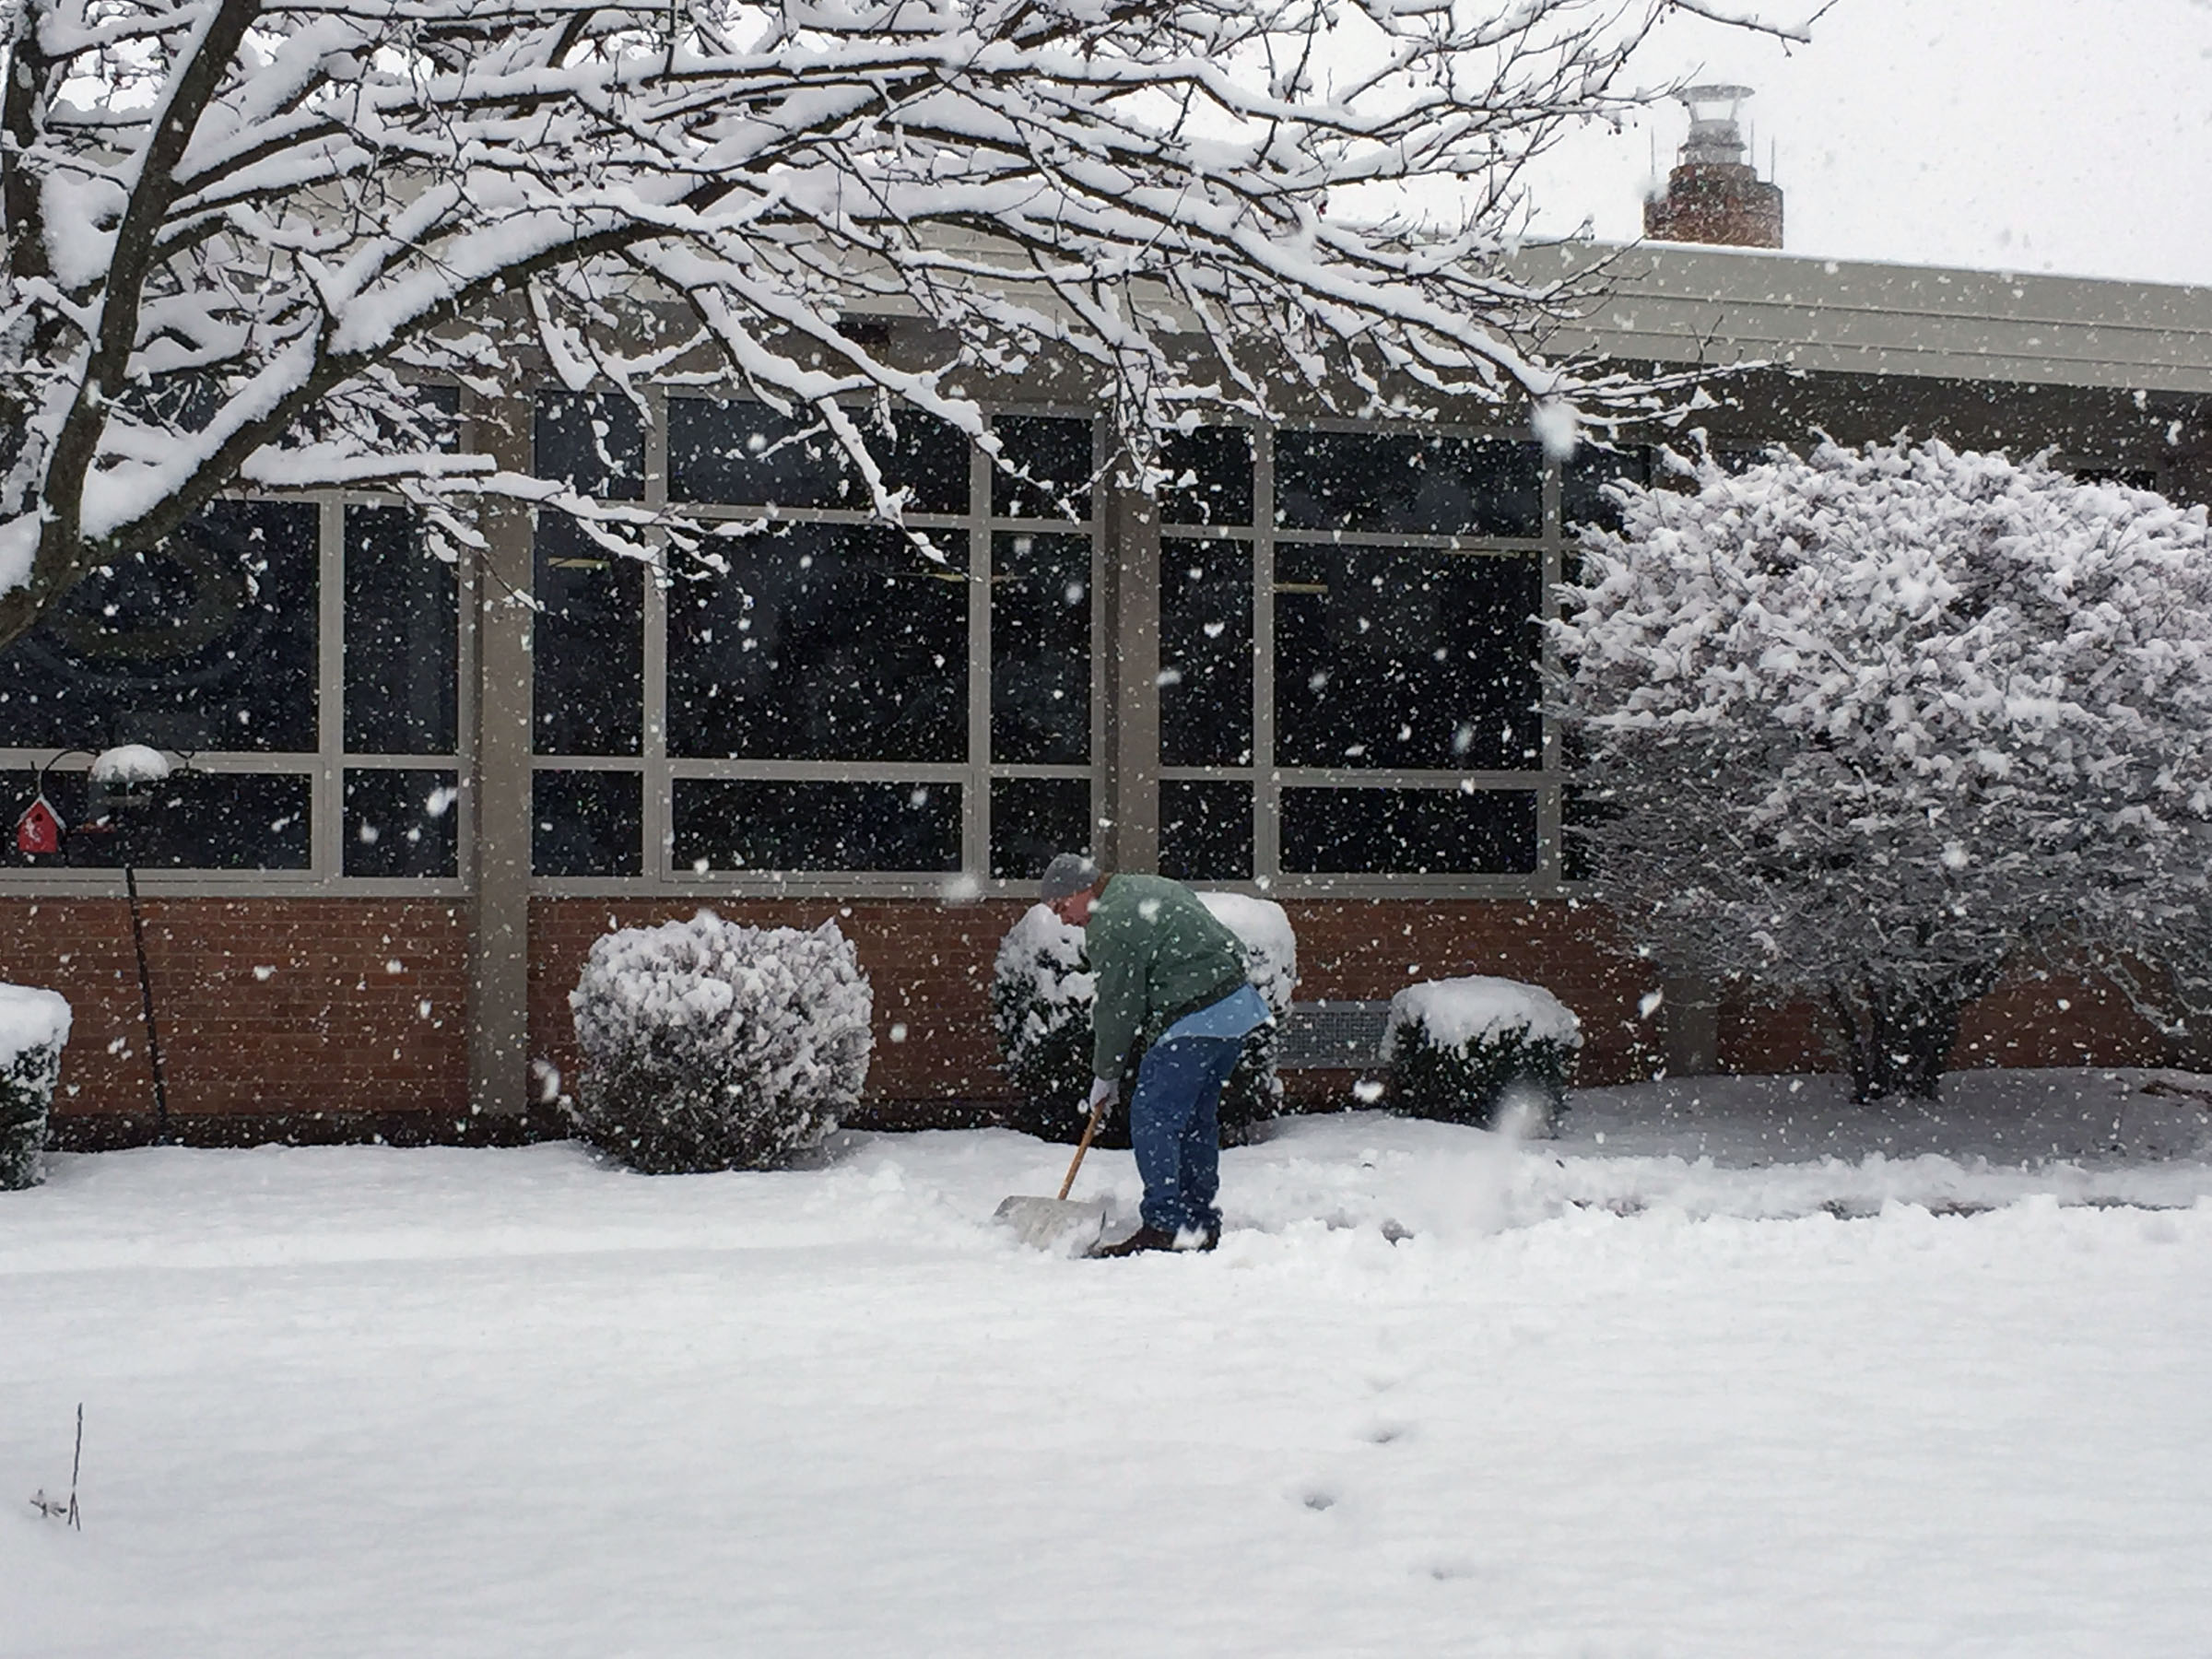 Image of custodian shoveling snow at Cline Elementary